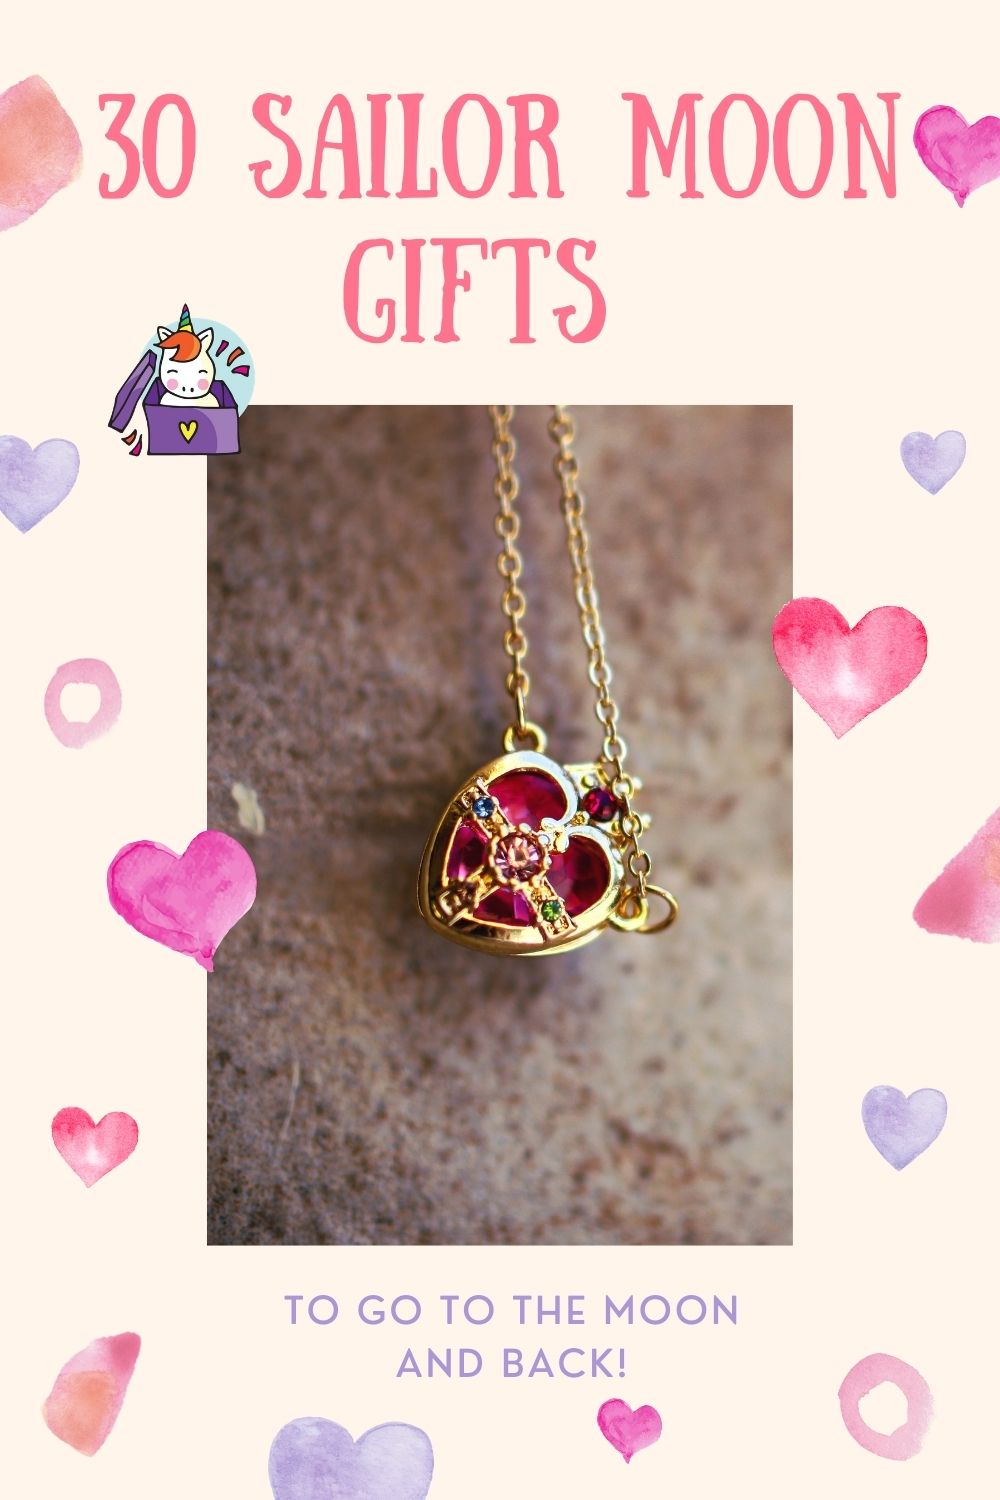 30 Sailor Moon Gifts To Go to the Moon and Back! - pinterest pin image